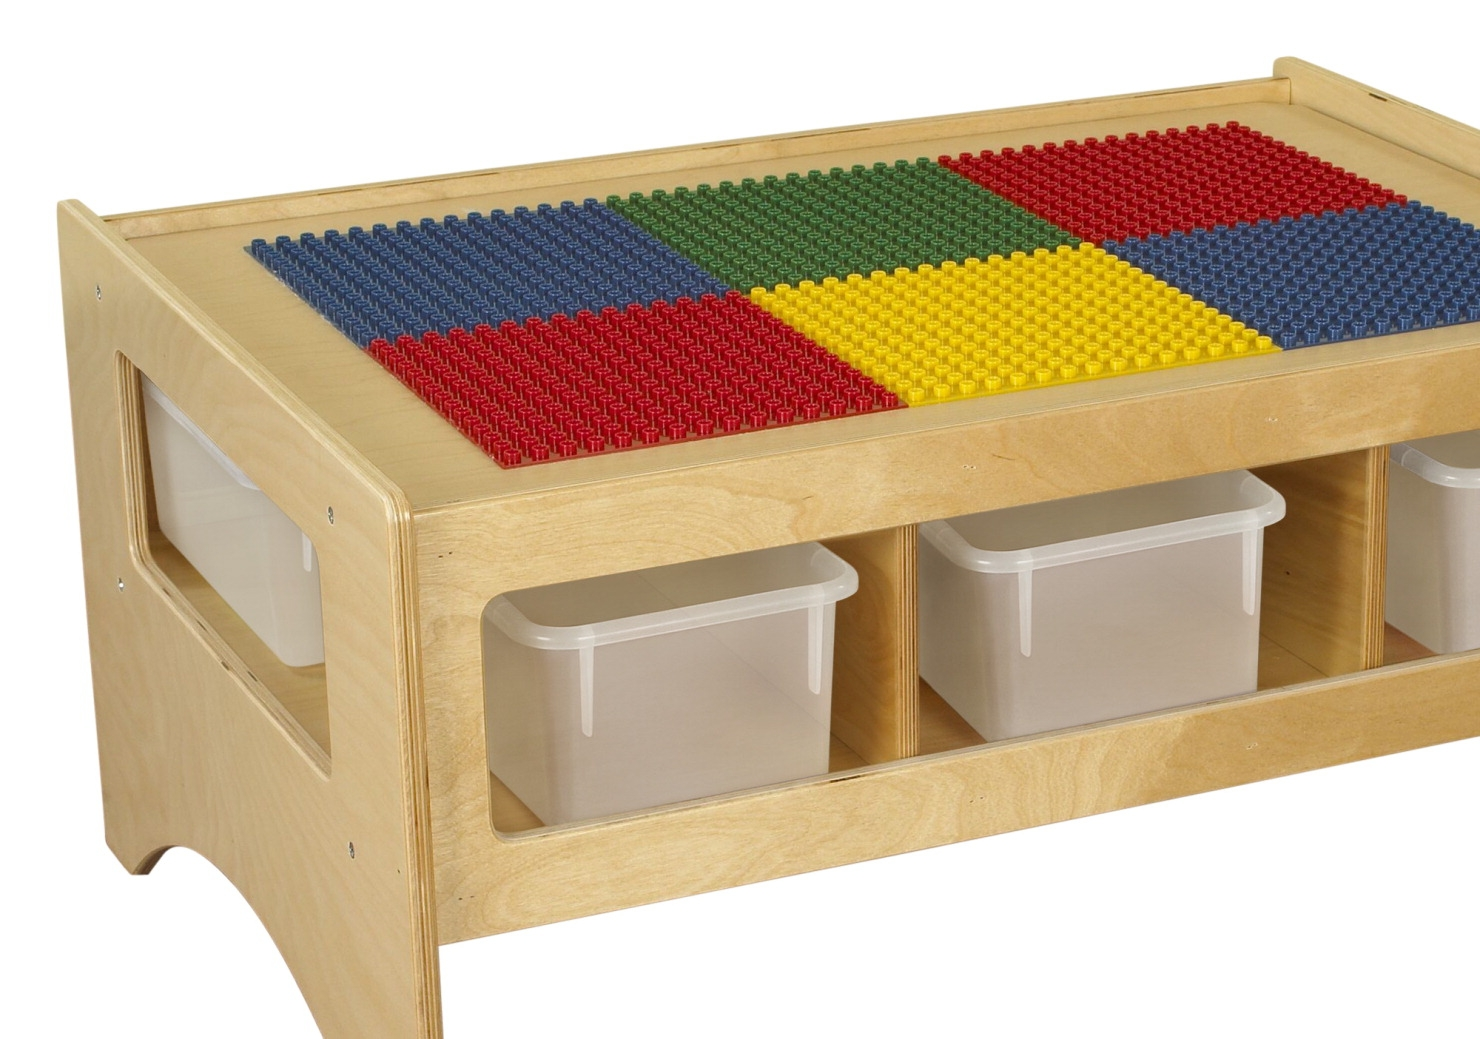 Childcraft Toddler Multi-purpose Play Table With 6 Translucent Trays; Colors May Vary - 1539300 - Toys Hands On Math Activities 1539300